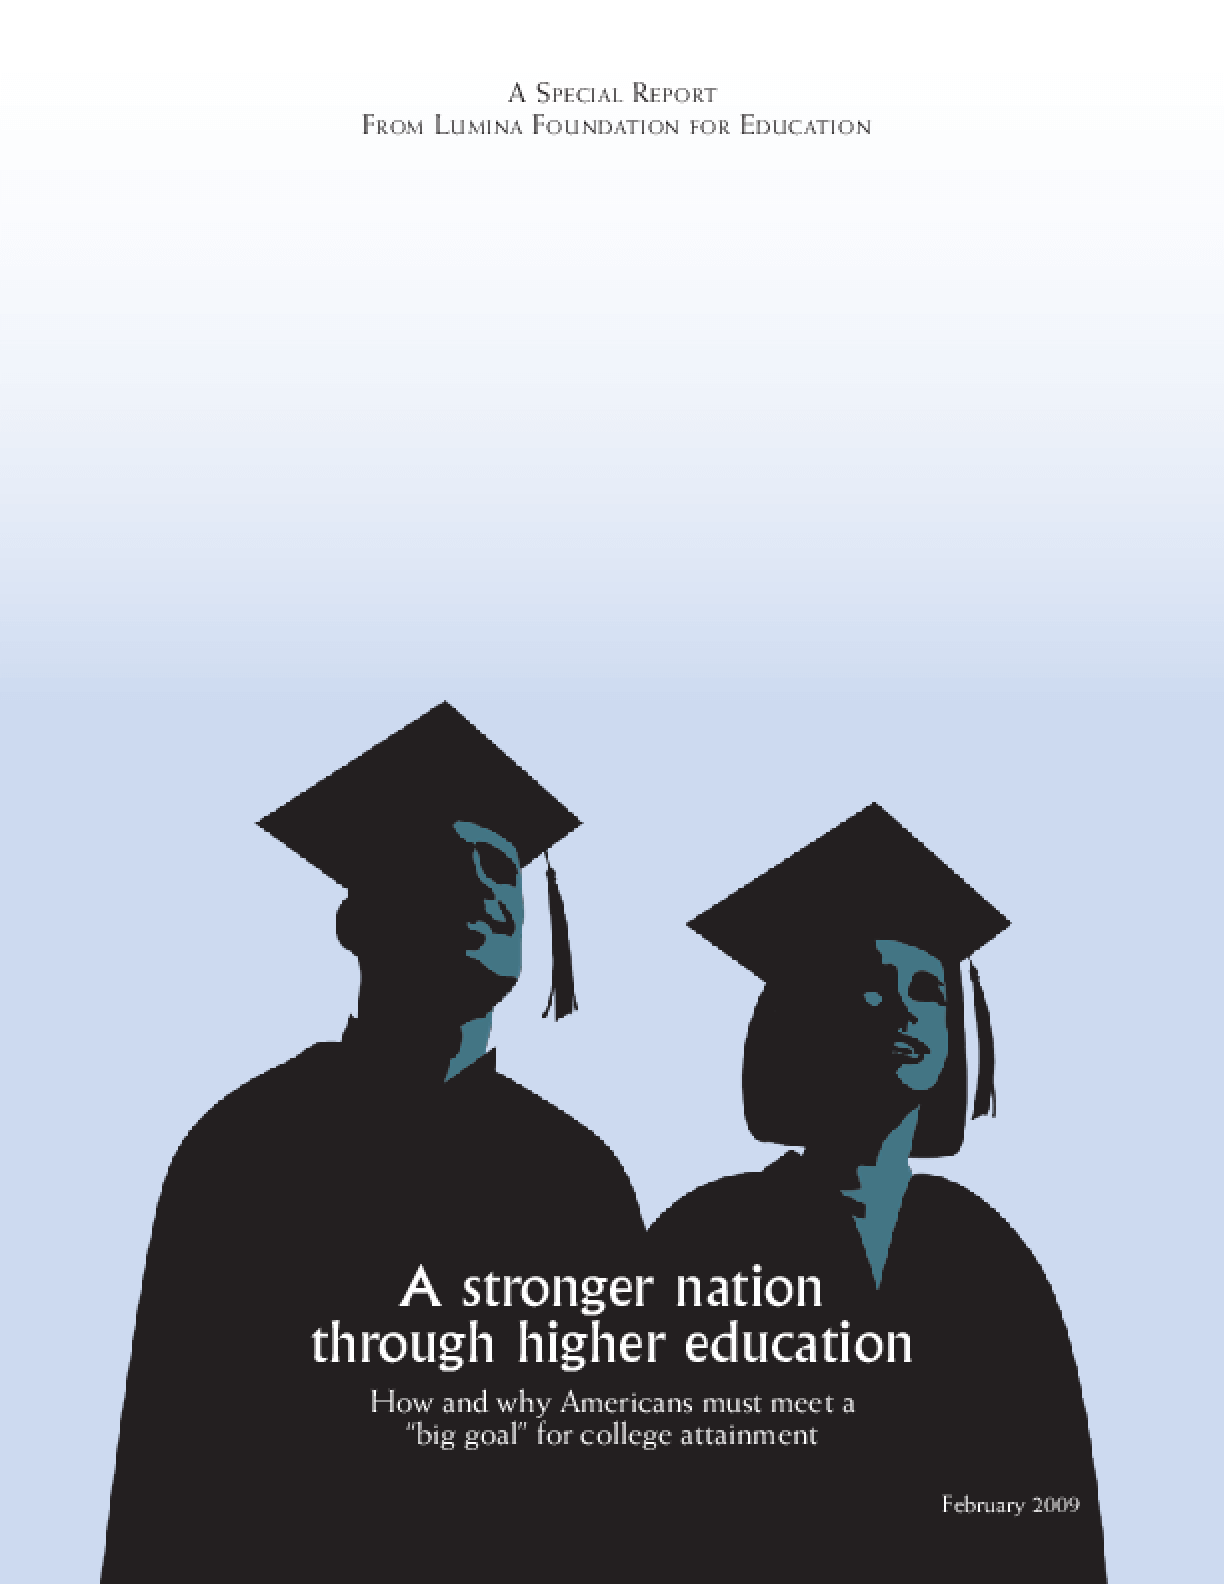 """A Stronger Nation Through Higher Education: How and Why Americans Must Meet a """"Big Goal"""" for College Attainment"""